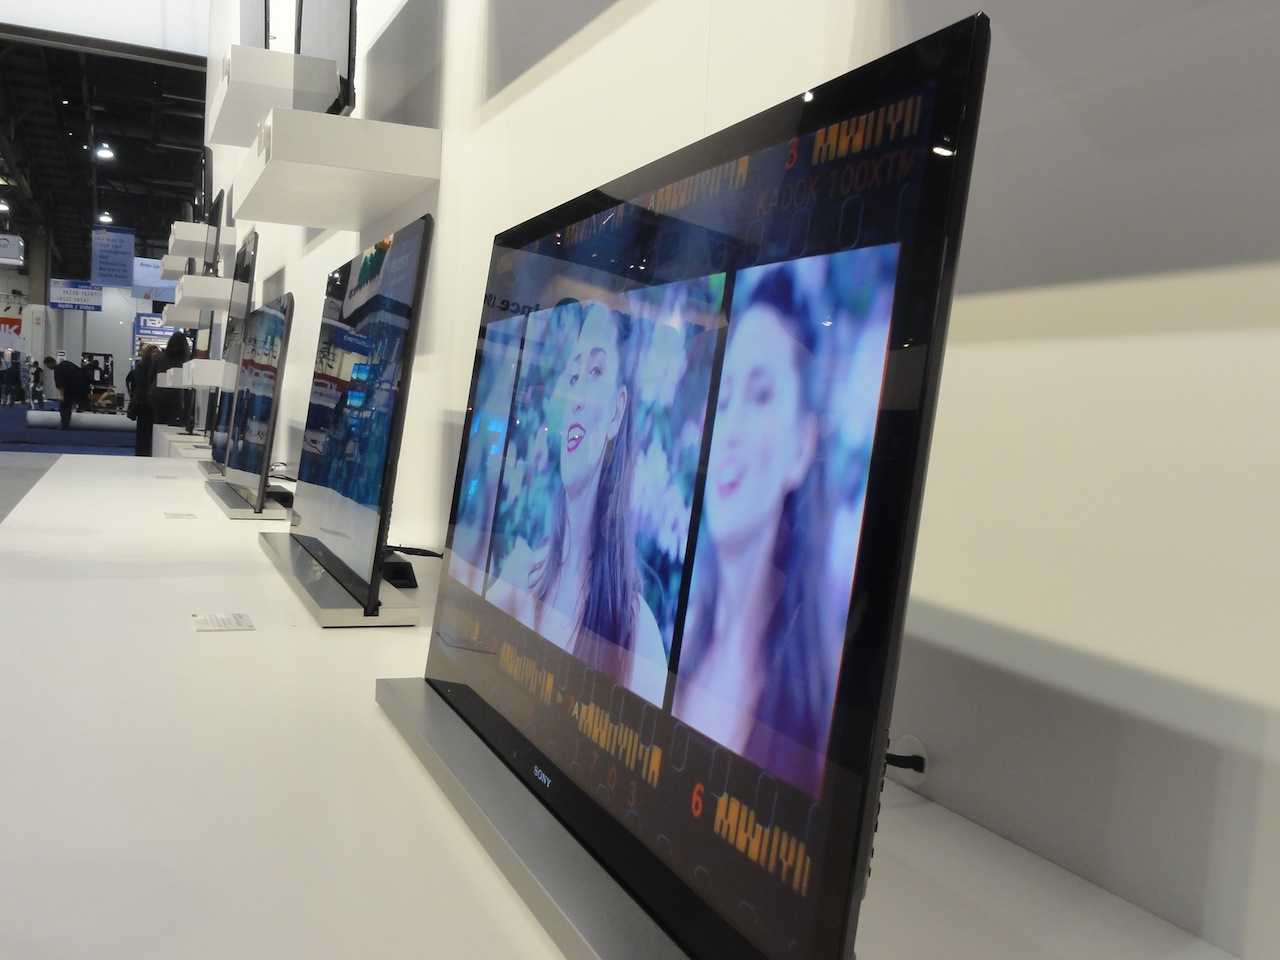 Sony Introduces 27 New Bravia Models for 2011, Most with Internet